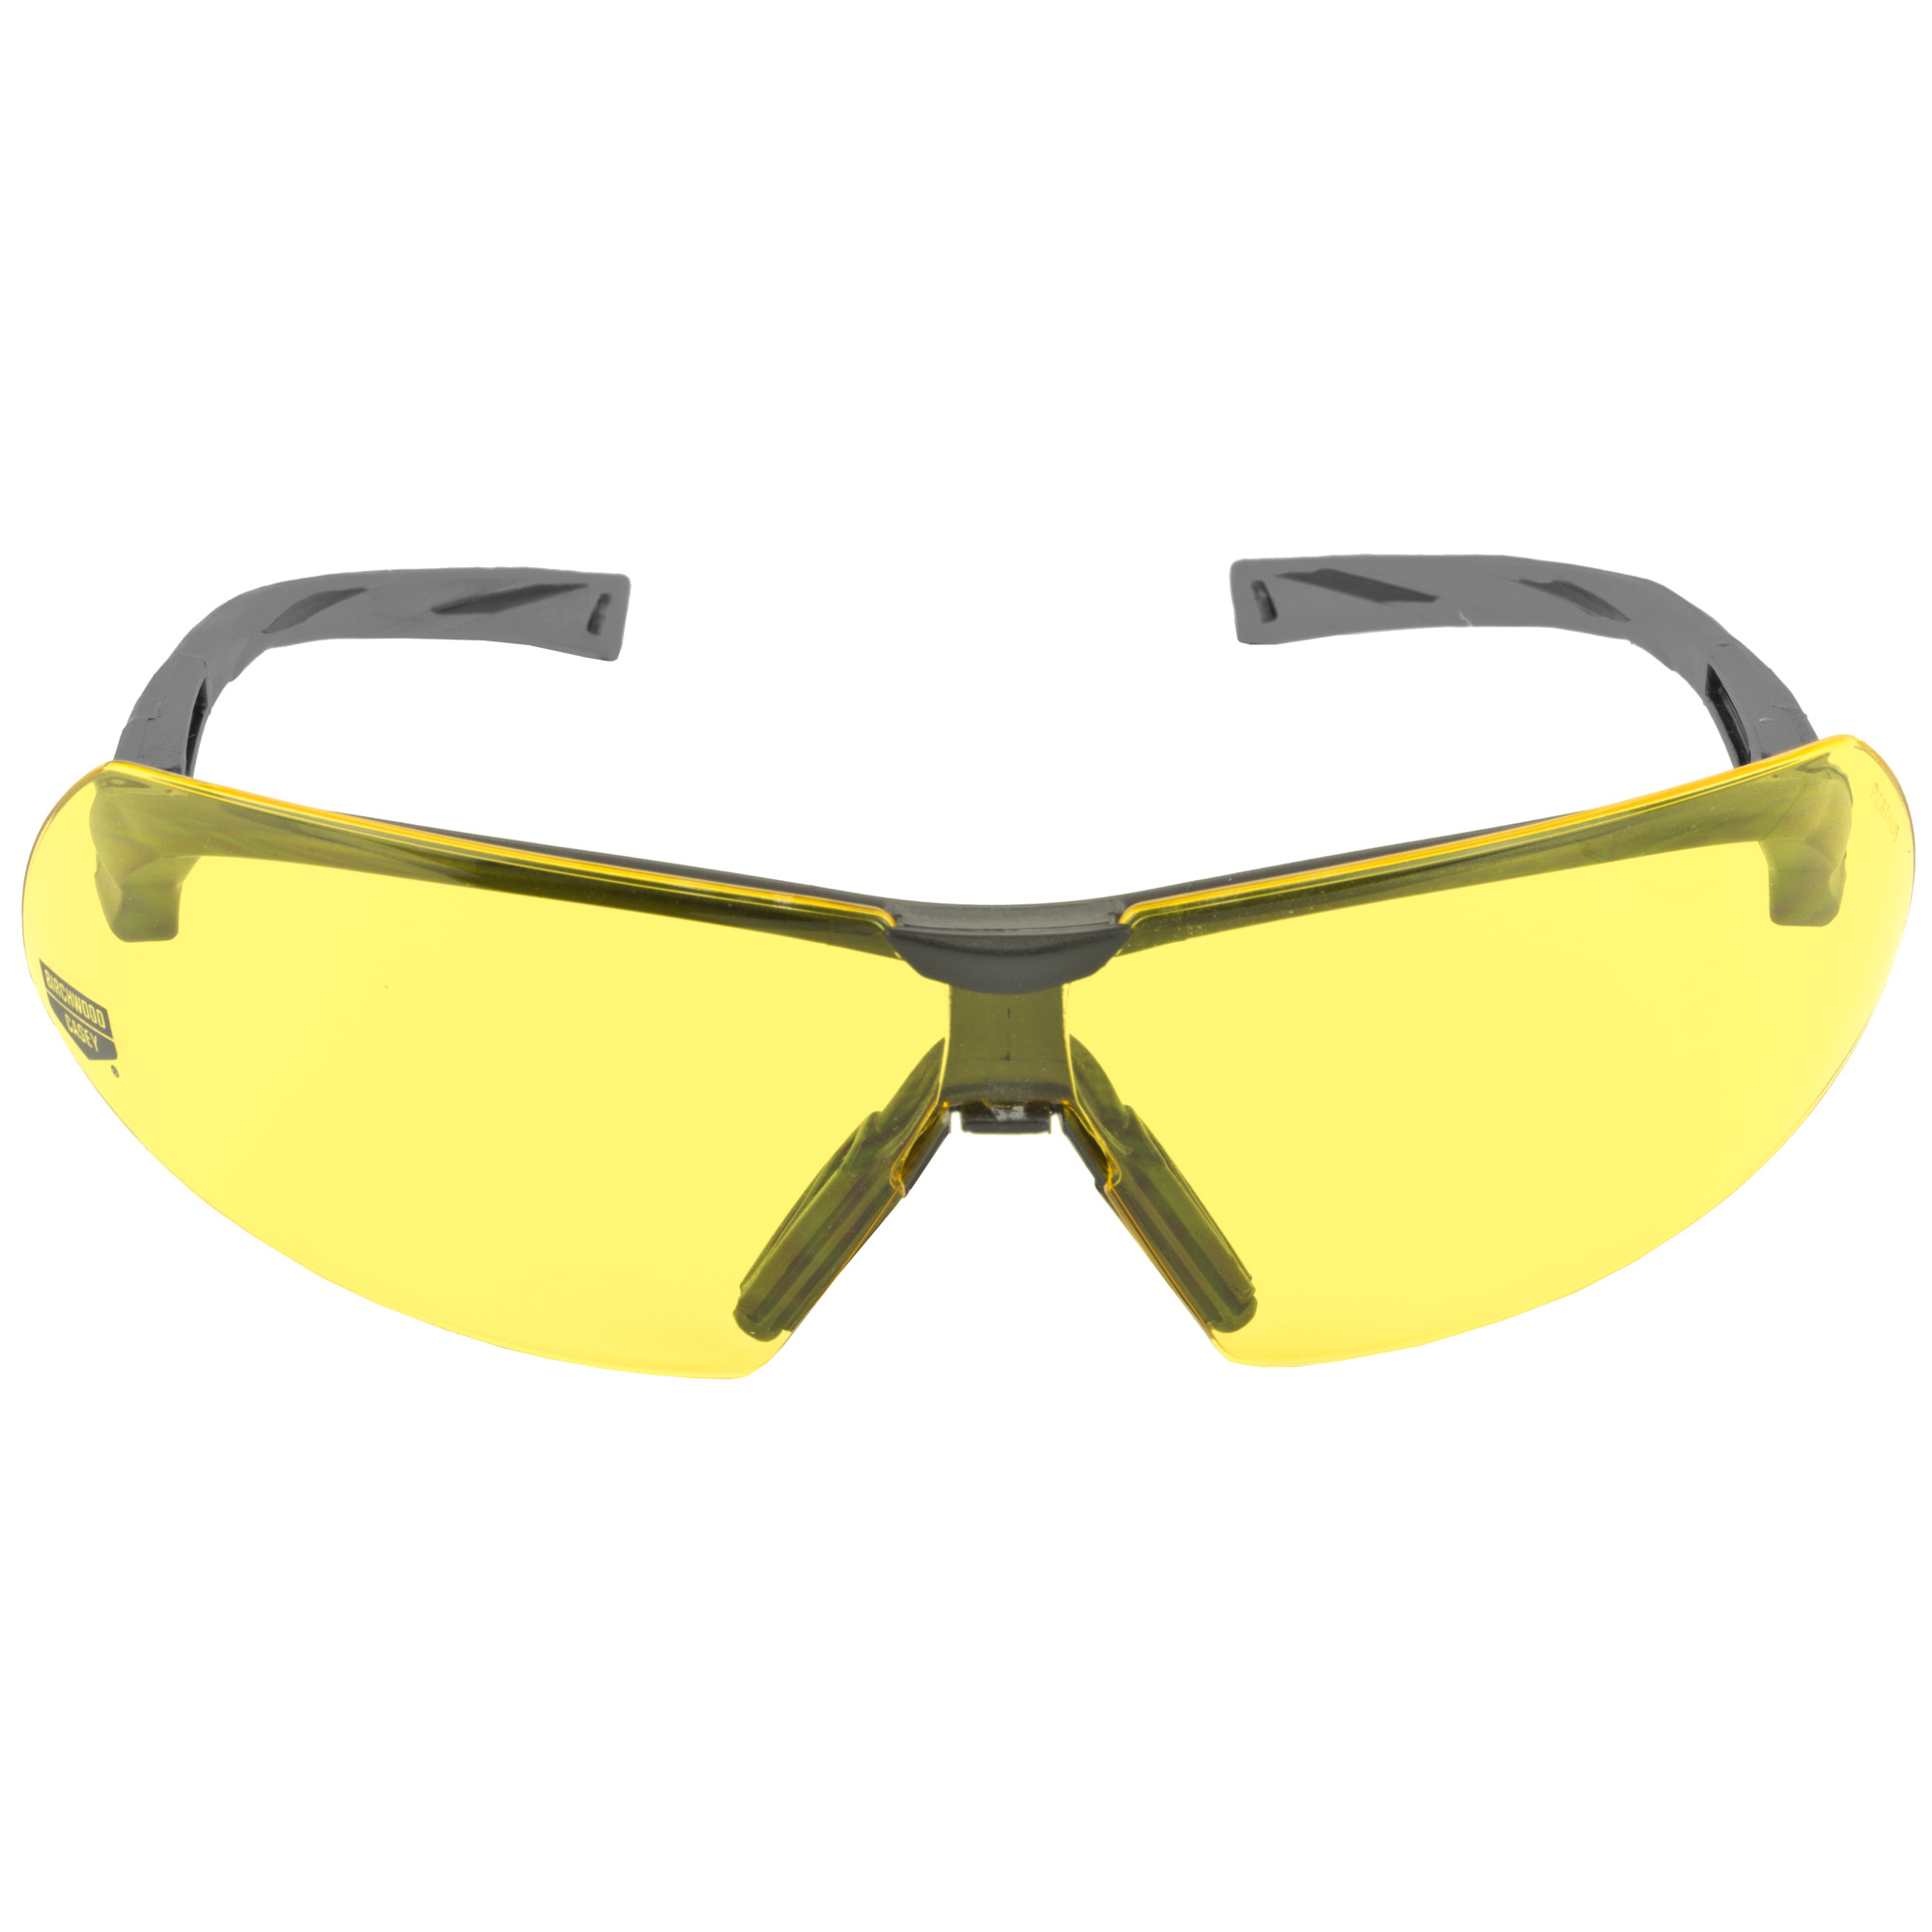 The SKYTE Yellow Lens Eye Protection exceed high velocity impact standards and feature a free floating lens design. These shooting glasses offer high-end performance at a price all shooters can afford. The Yellow lens is a great choice for low light shooting conditions.